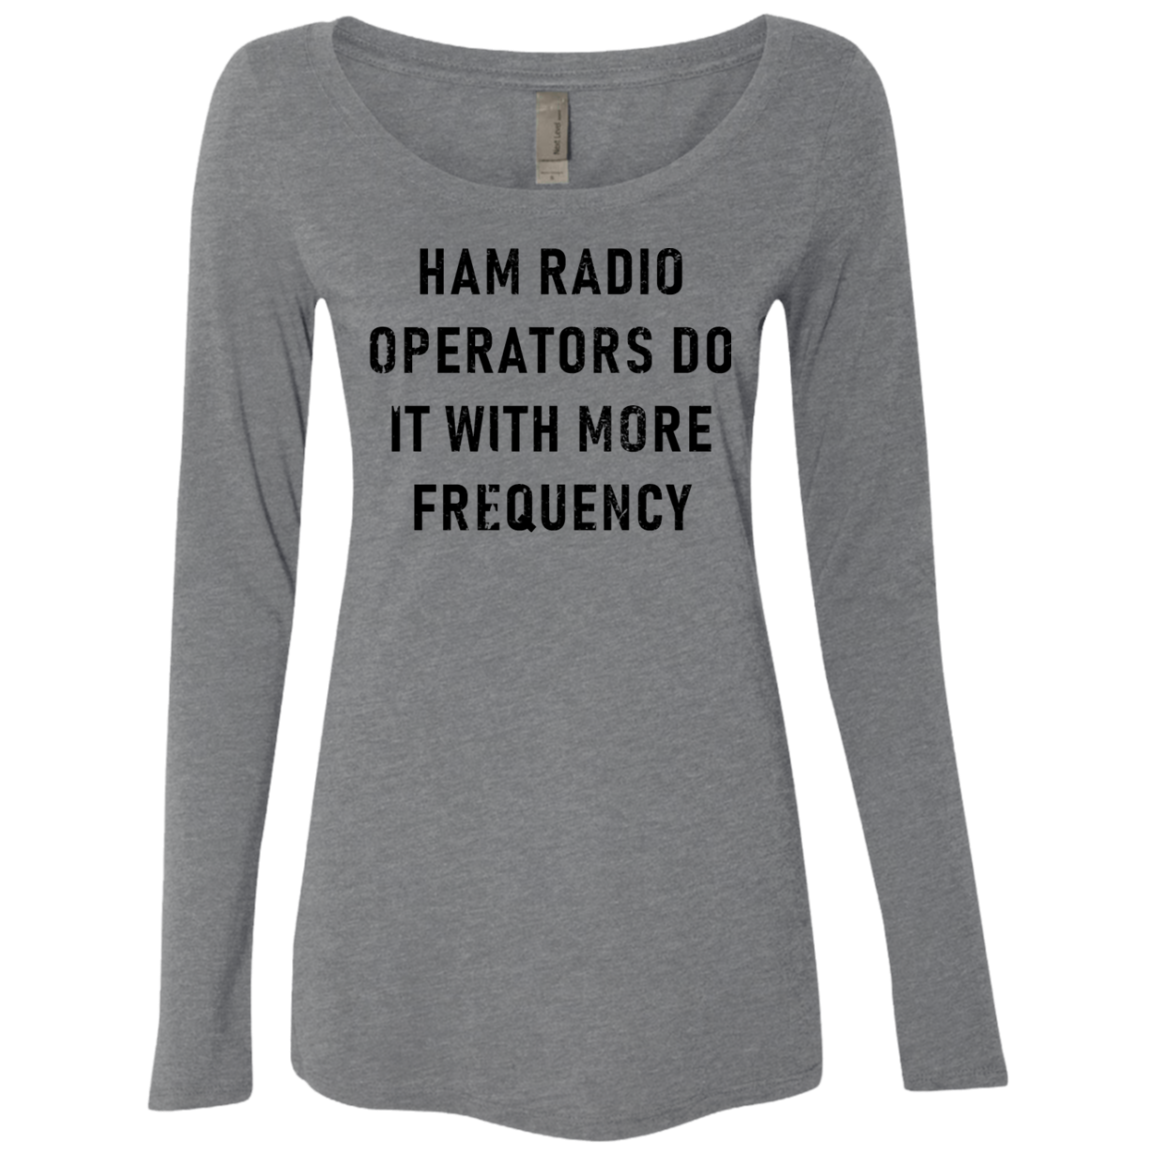 Ham Radio Operators Do It With More Frequency Women's Long Sleeve Tee